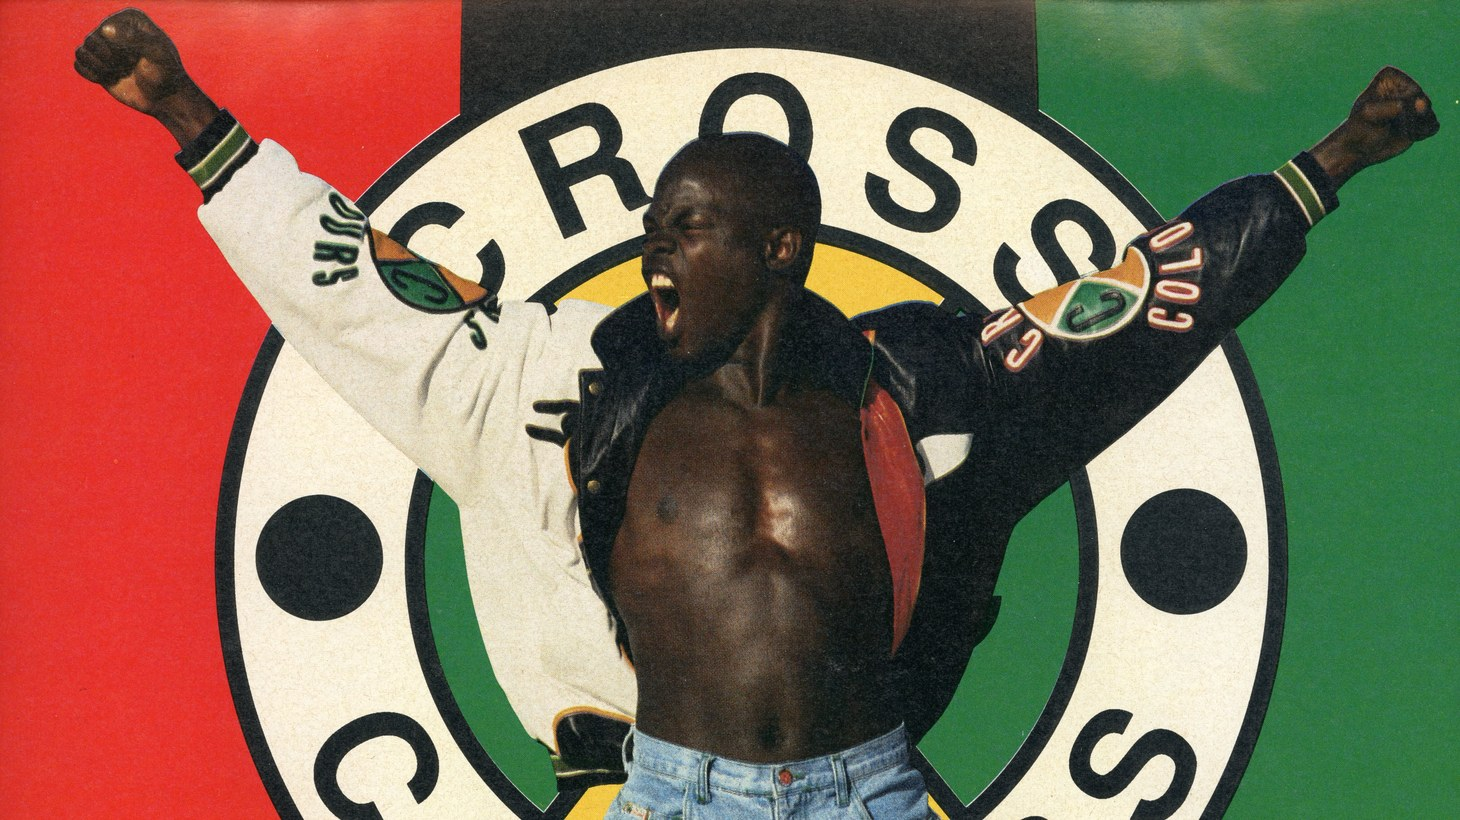 Cross Colours advertisement in URB magazine featuring Djimon Hounsou, ca. 1991.